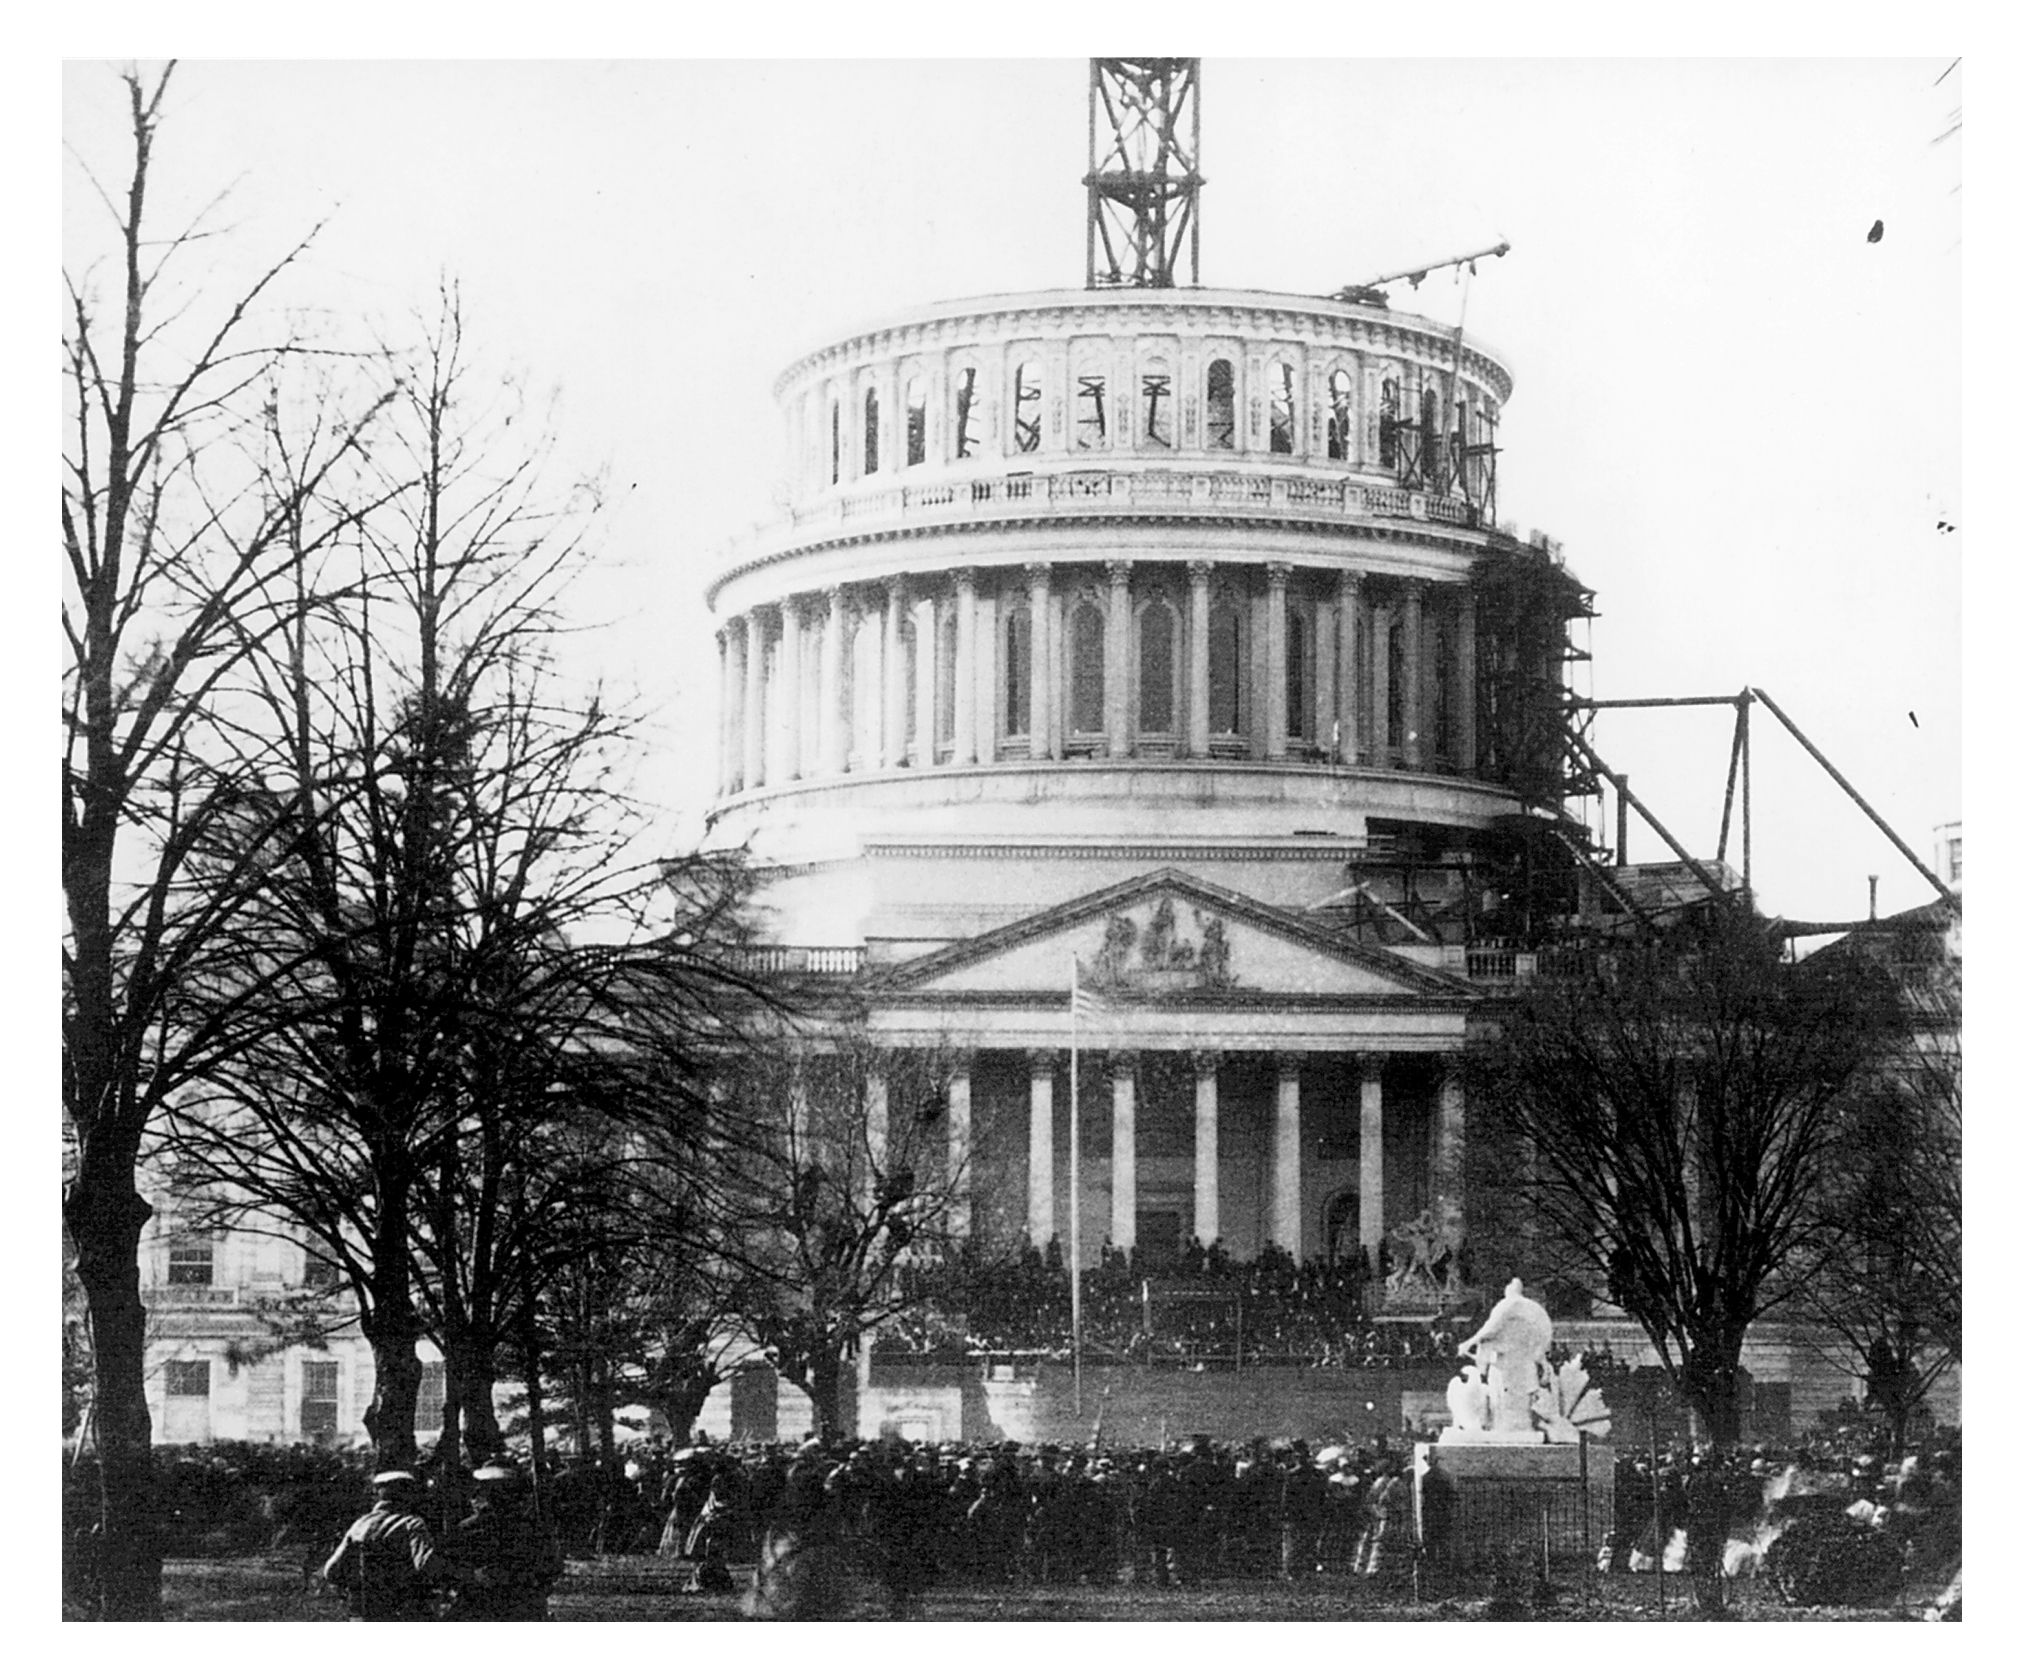 inaugural address of jefferson davis